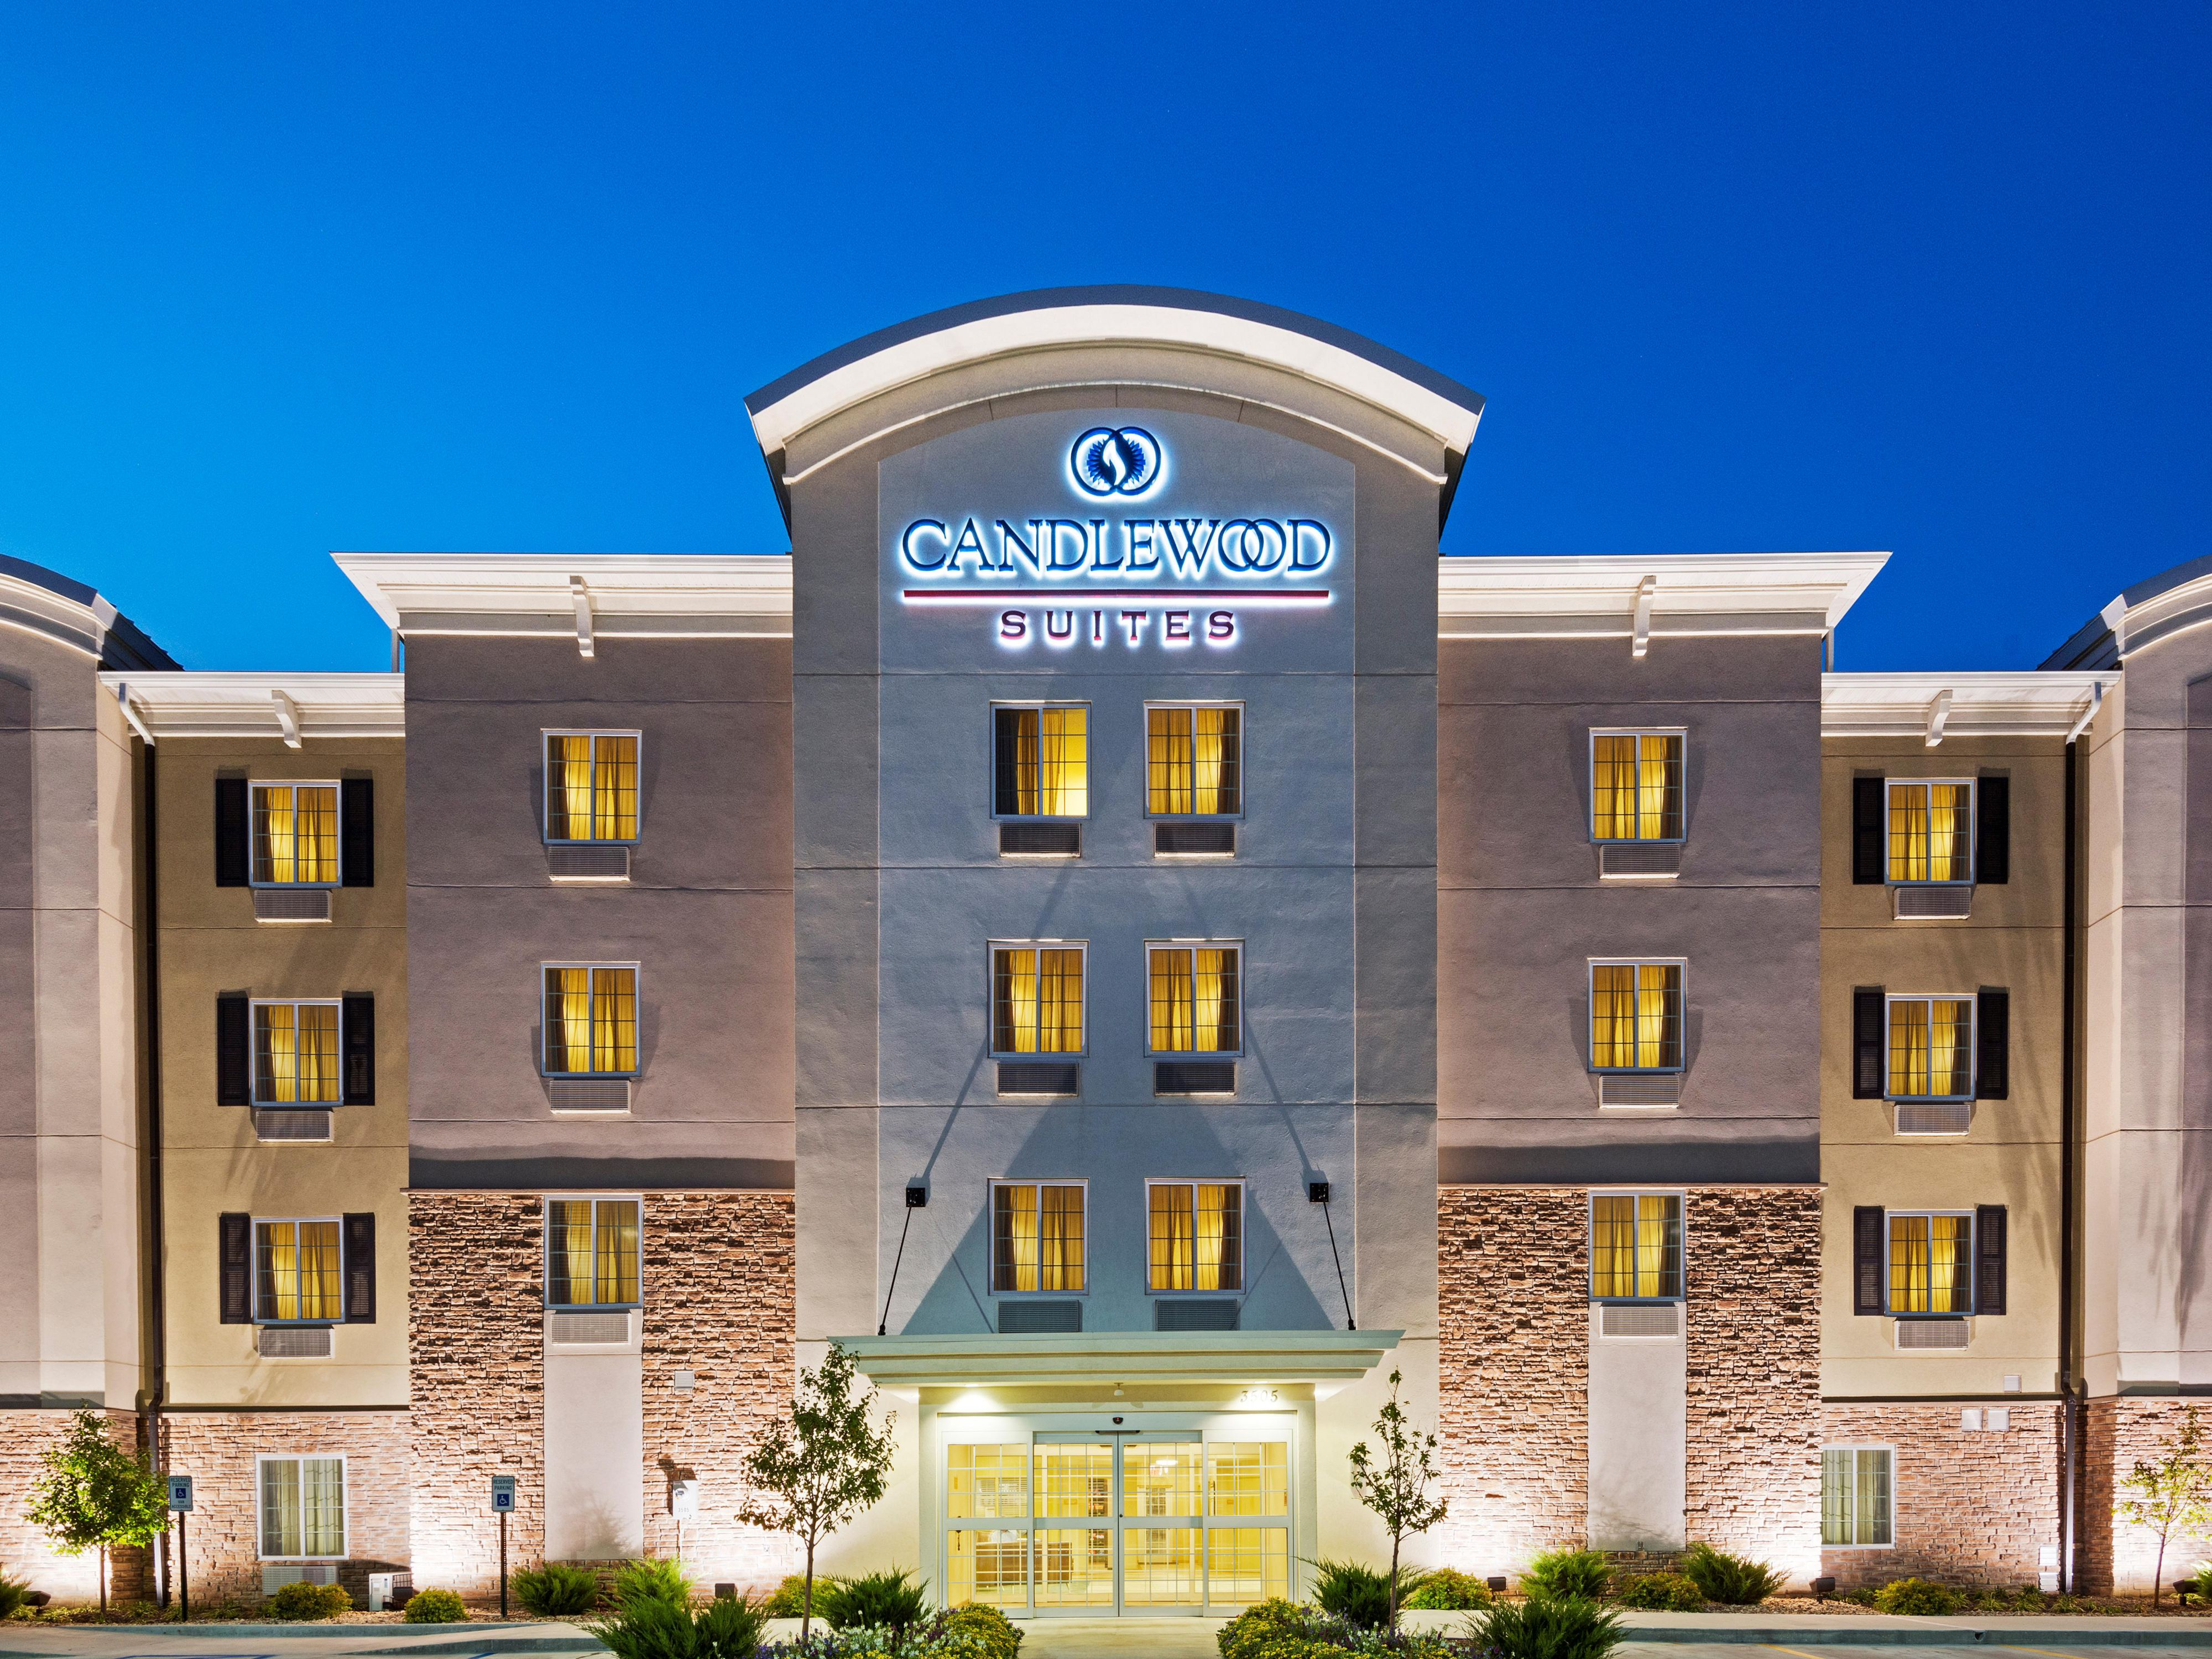 Candlewood Suites Farmers Branch Extended Stay Hotel in Farmers